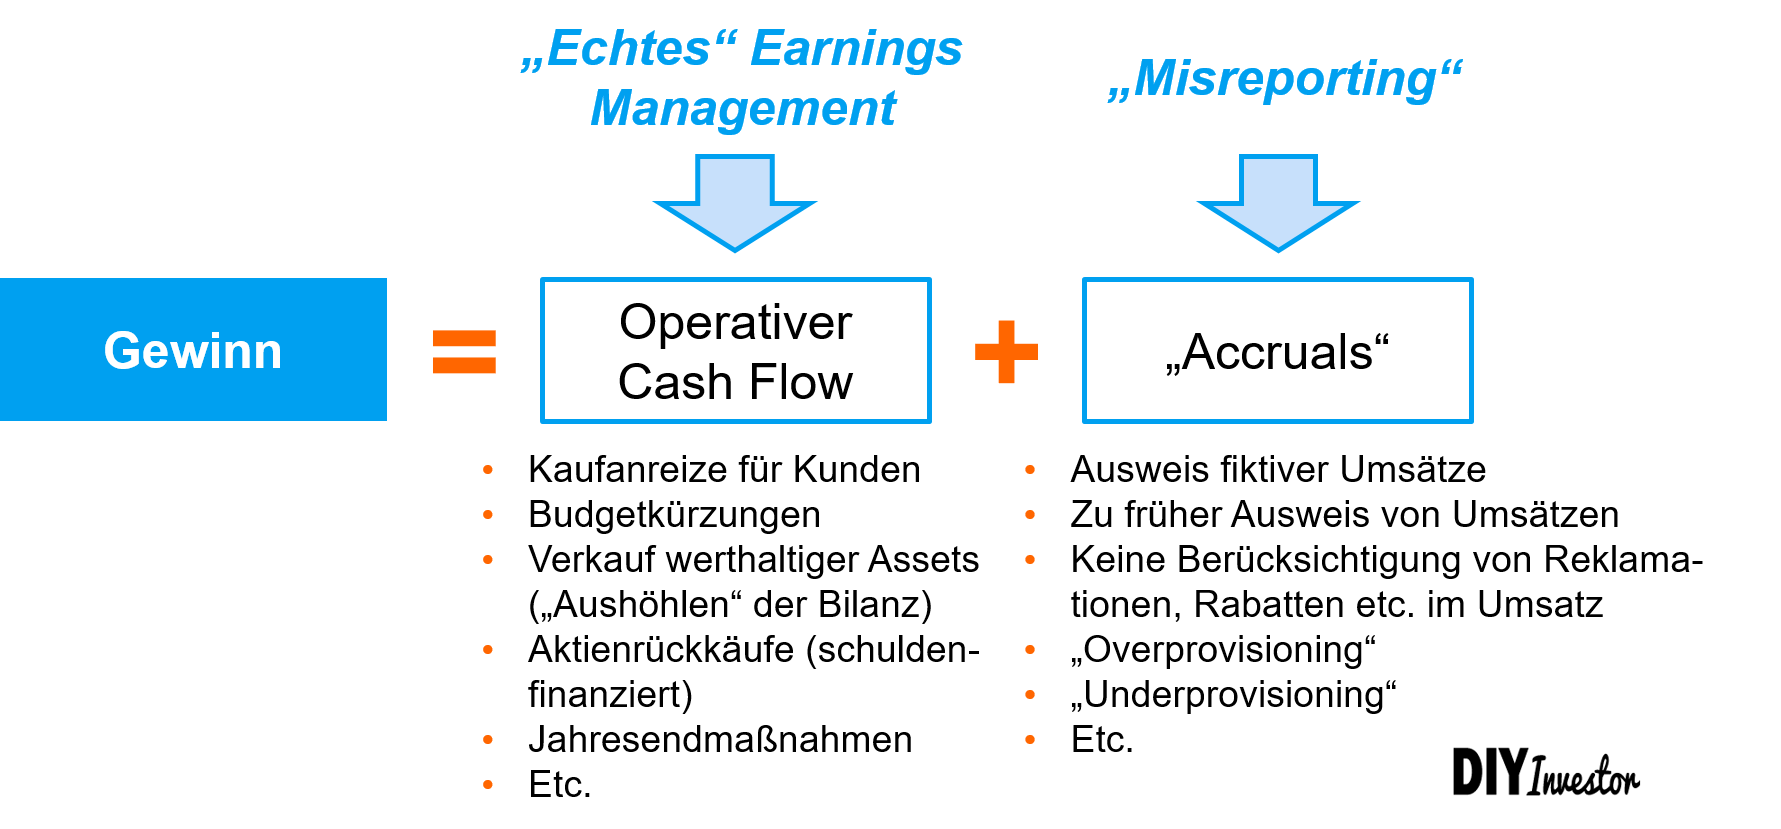 Earnings Management - Einteilung